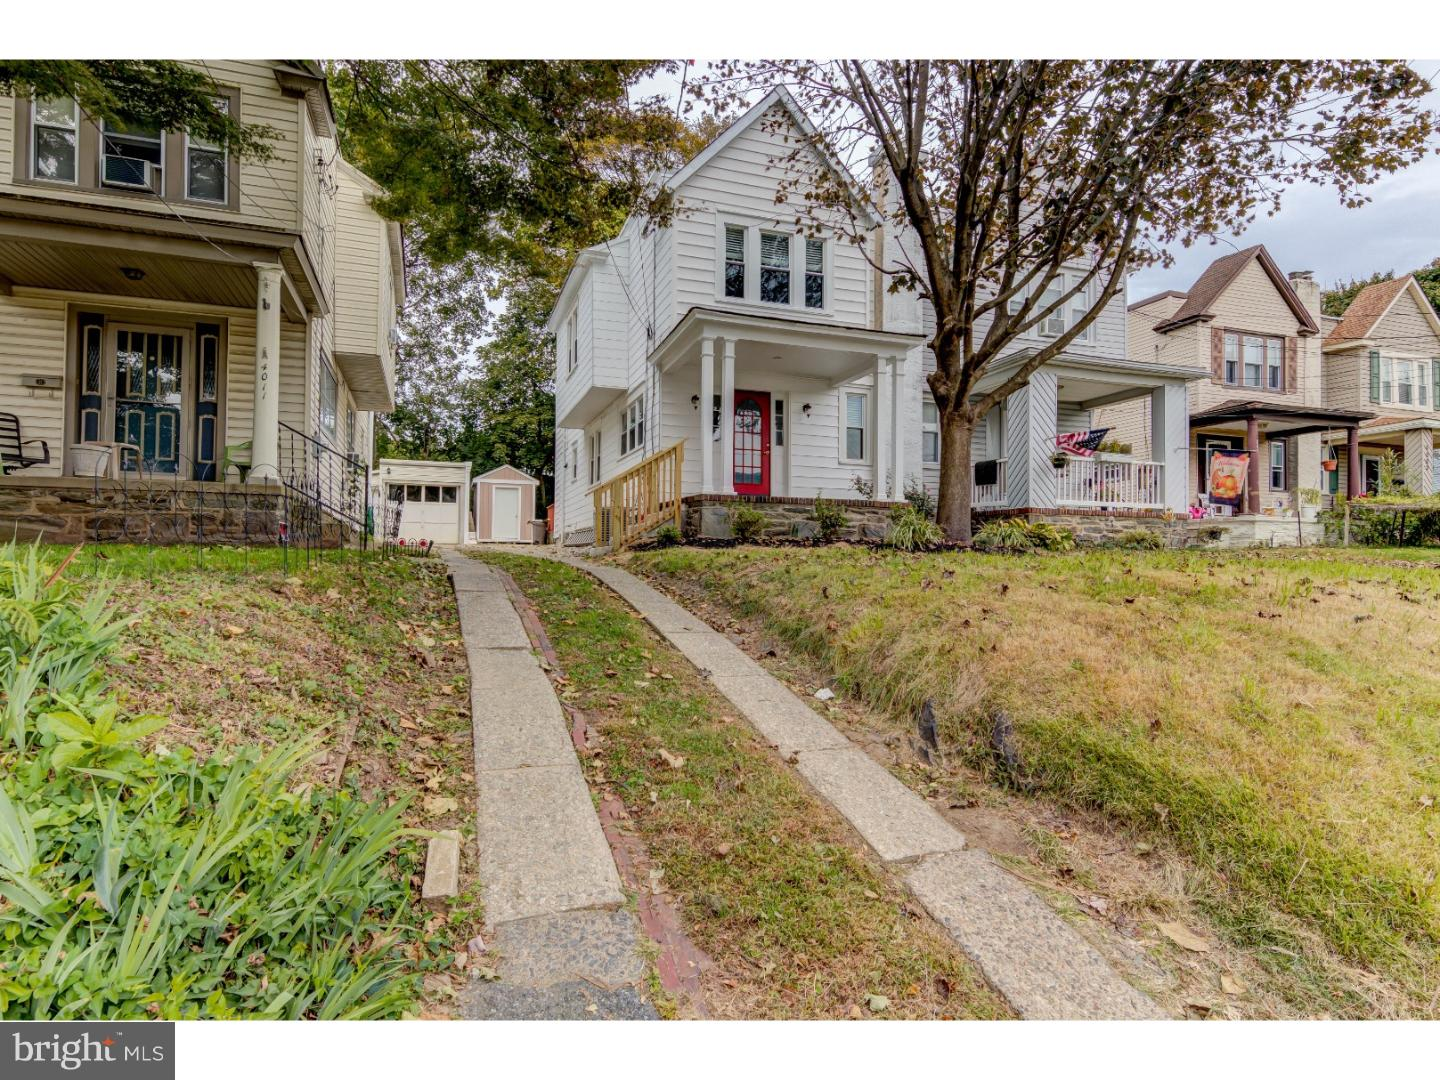 4009 Vernon Road Drexel Hill, PA 19026